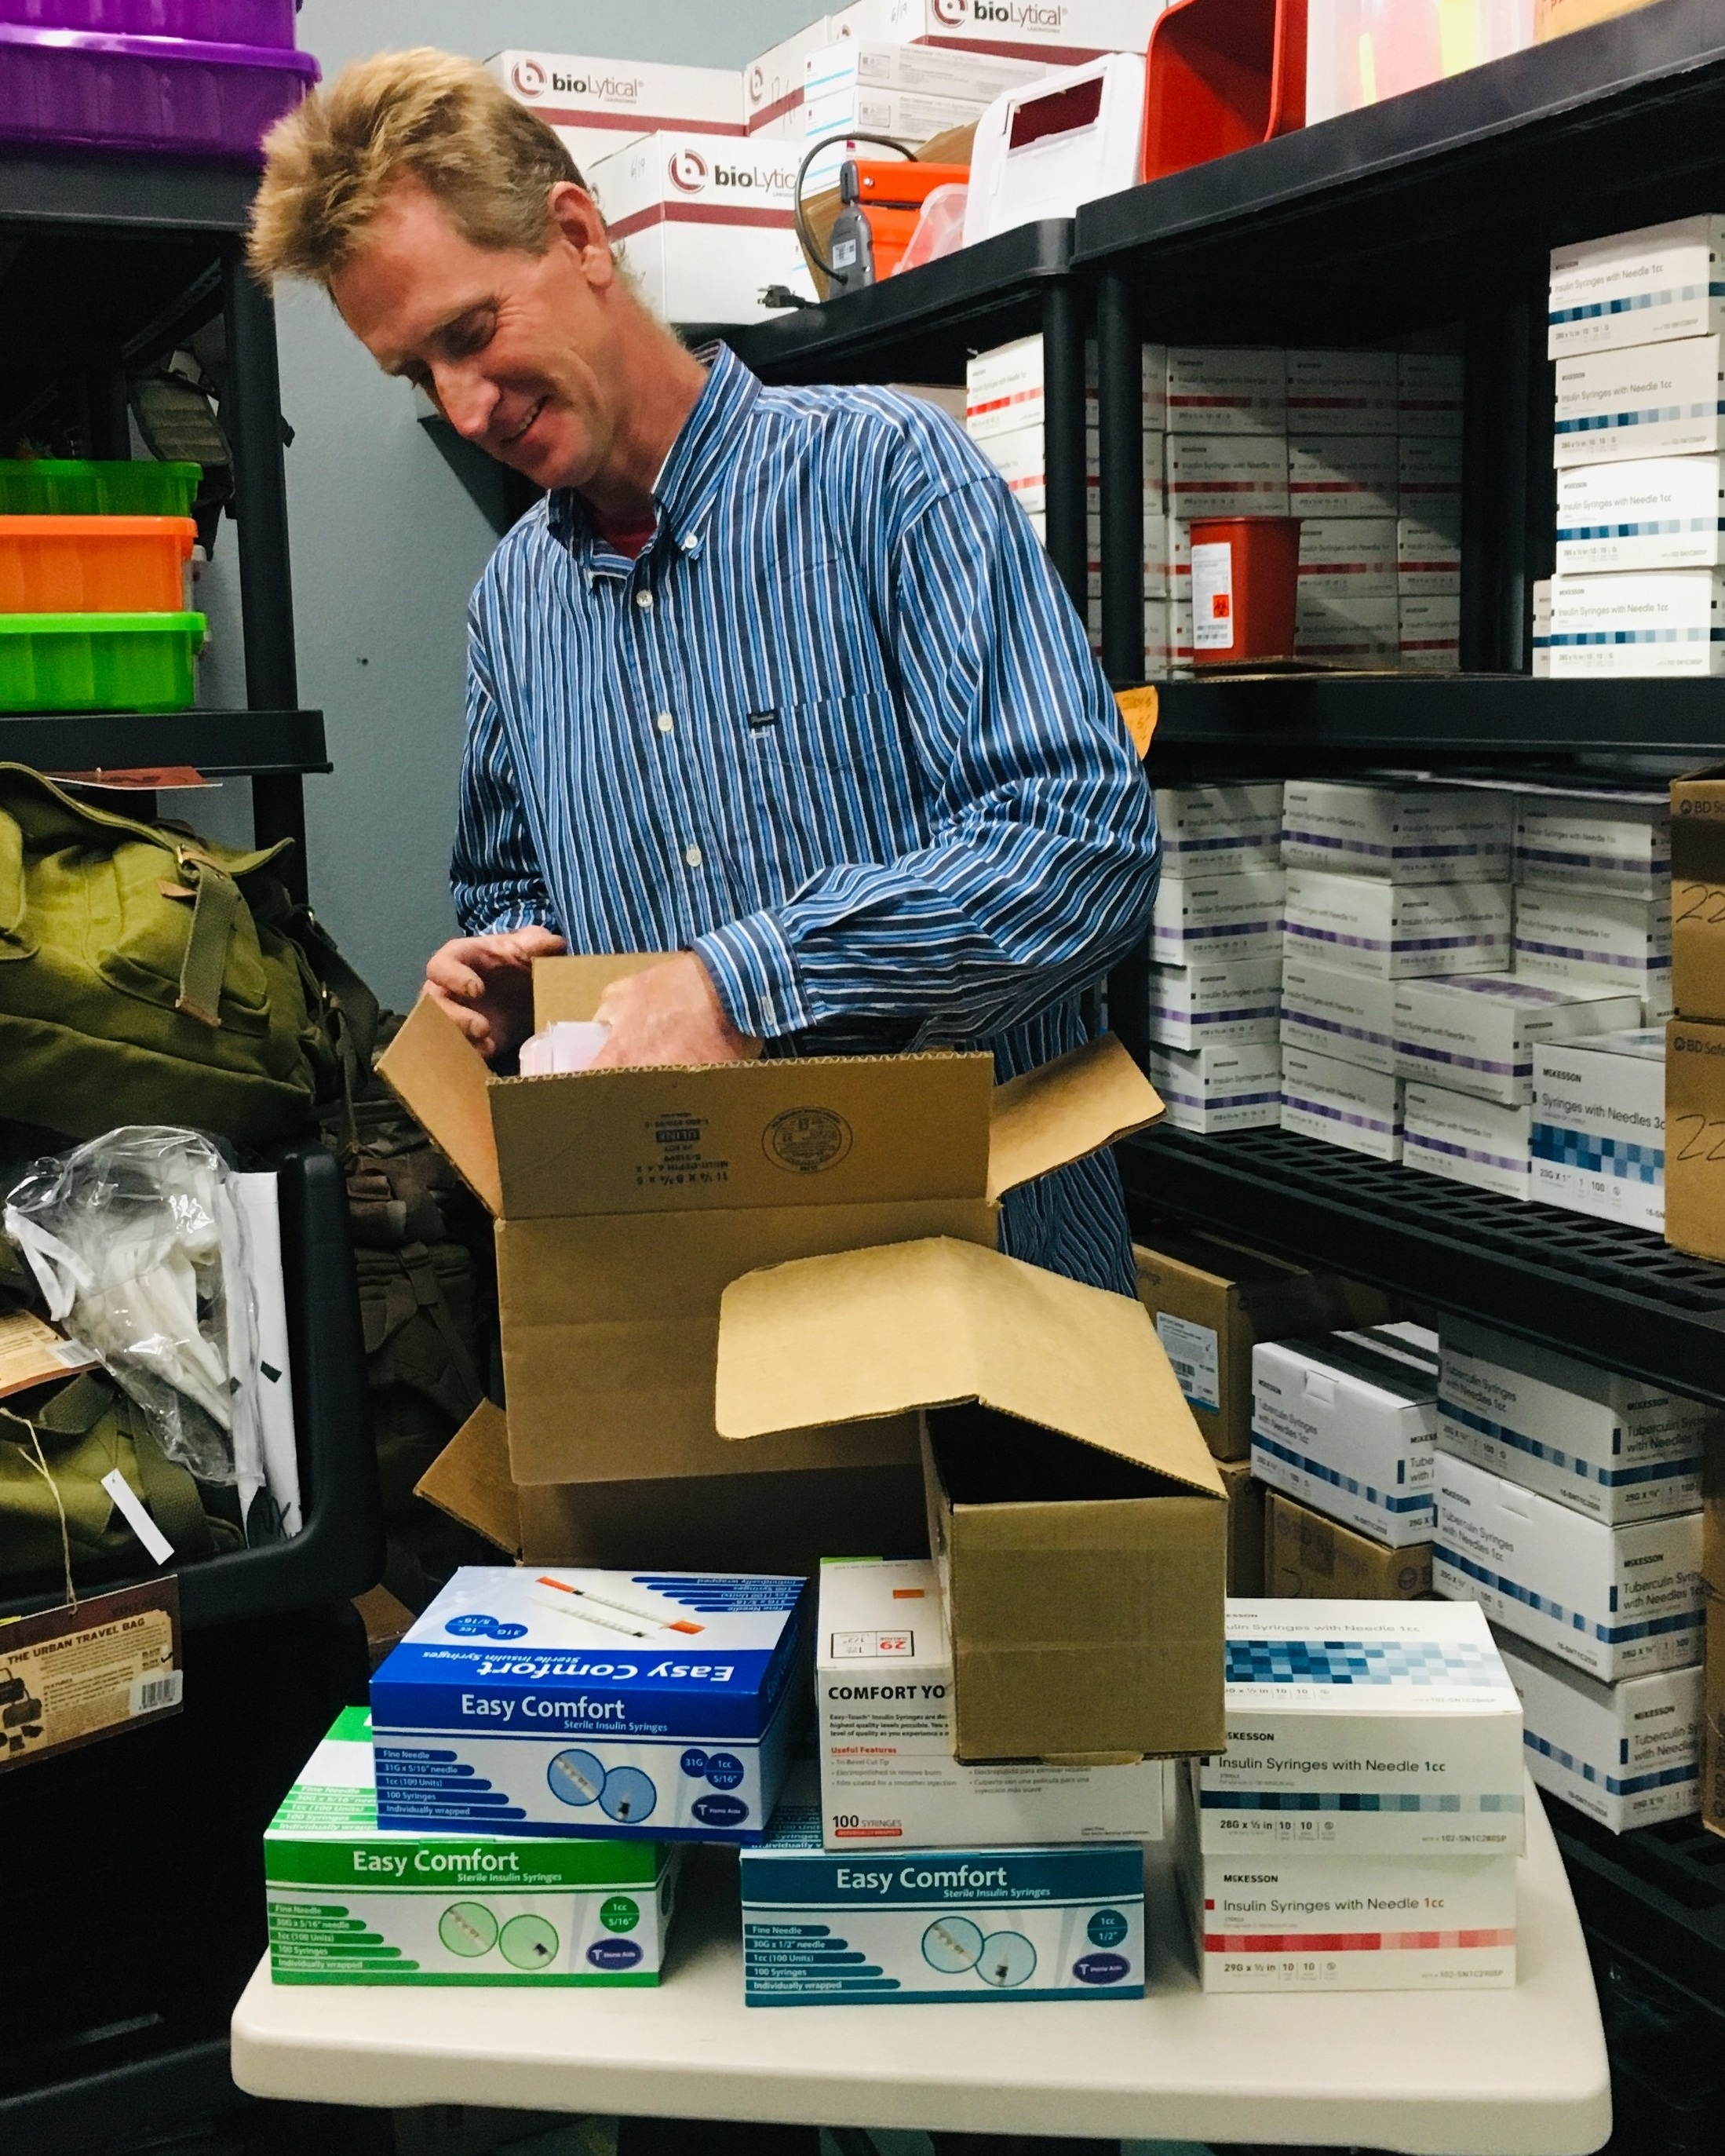 Mail-based Services: What we offer - Clients will receive with their first shipment:a) 1 gallon sharps container or 2 on quart sharps containers, b) 100 syringes (either 30g 5/16th inch tip or 30g 1/2 inch tip, both 1cc), c) Additional supplies for safe injection, d) Treatment and recovery information, e)Safer sex kit (optional), f) Abscess kit (optional), e) Naloxone kit (based on need), f) Fentanyl test strips (based on need).Clients will receive with their second and subsequent shipment:a) 1 gallon sharps container or 2 on quart sharps containers, b) 100 syringes (either 30g 5/16th inch tip or 30g 1/2 inch tip, both 1cc), c) Return mail box with paid postage label d) Instructions on returning sharps legally and safely e) Information on Hepatitis C, safer injection, safer sex, public health programs, treatment etc.